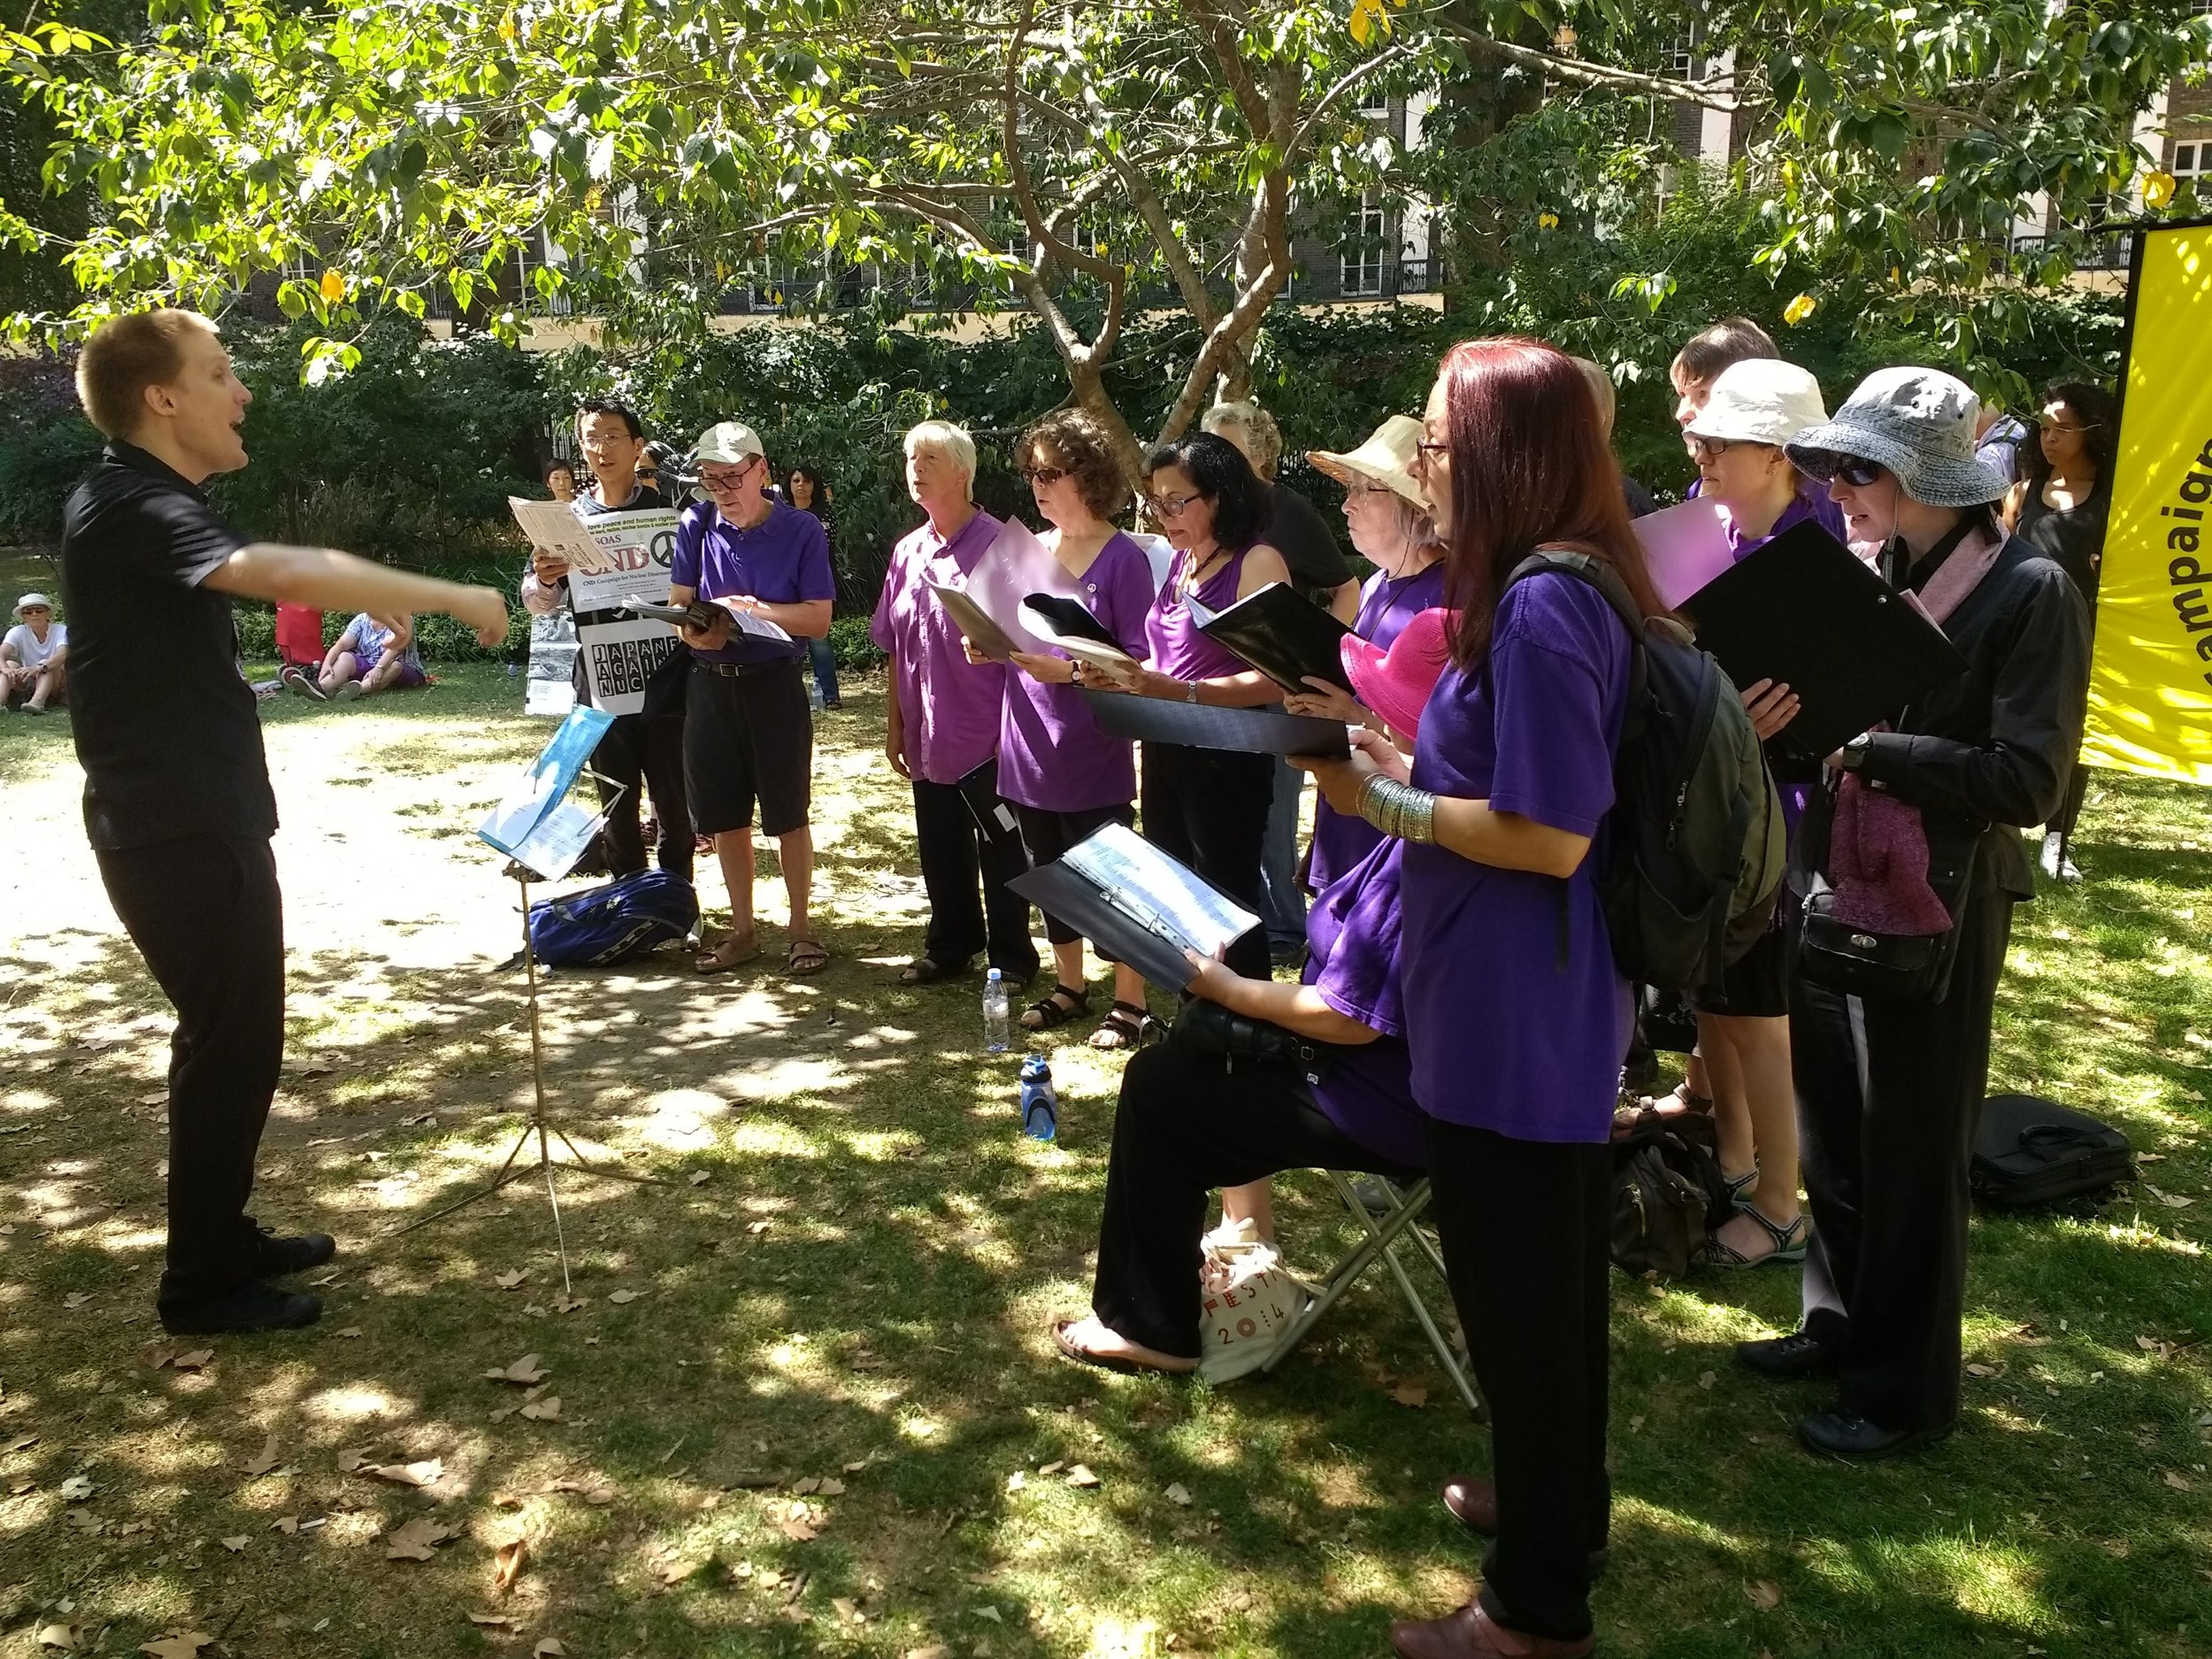 Raised Voices choir performing at our ceremony